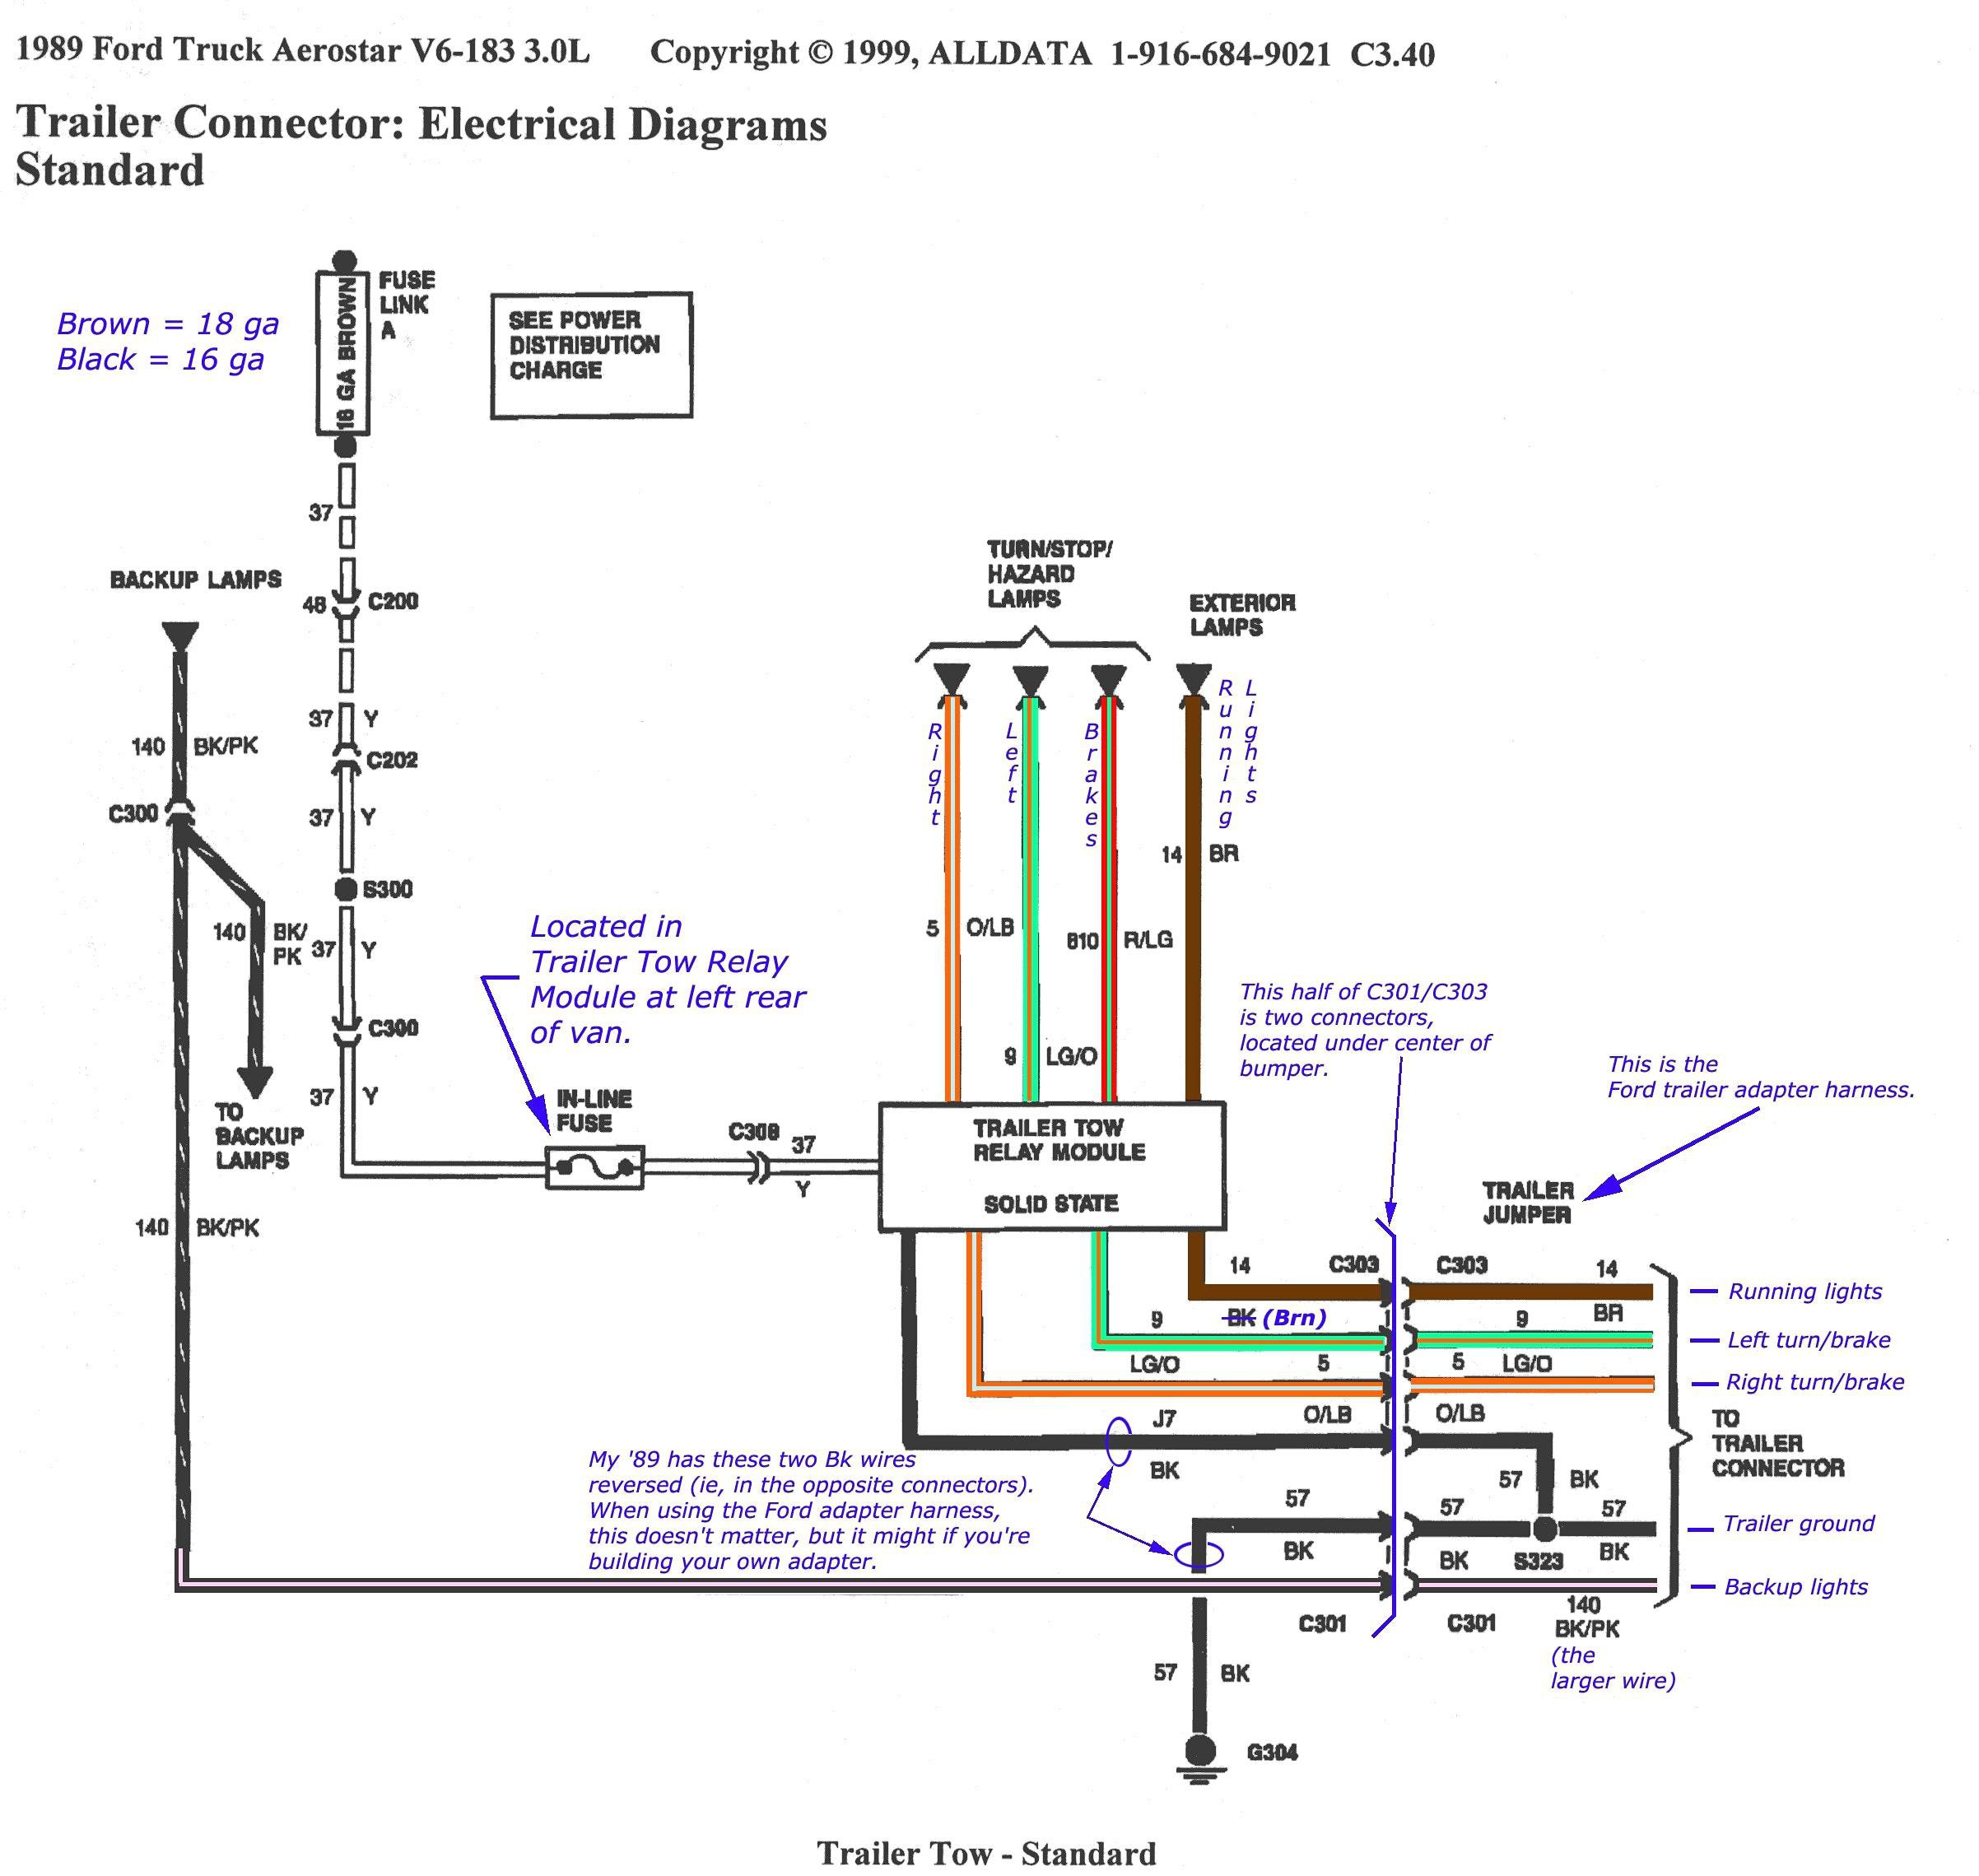 citroen c3 abs wiring diagram today diagram database citroen c8 wiring diagram citroen c8 wiring diagram #2